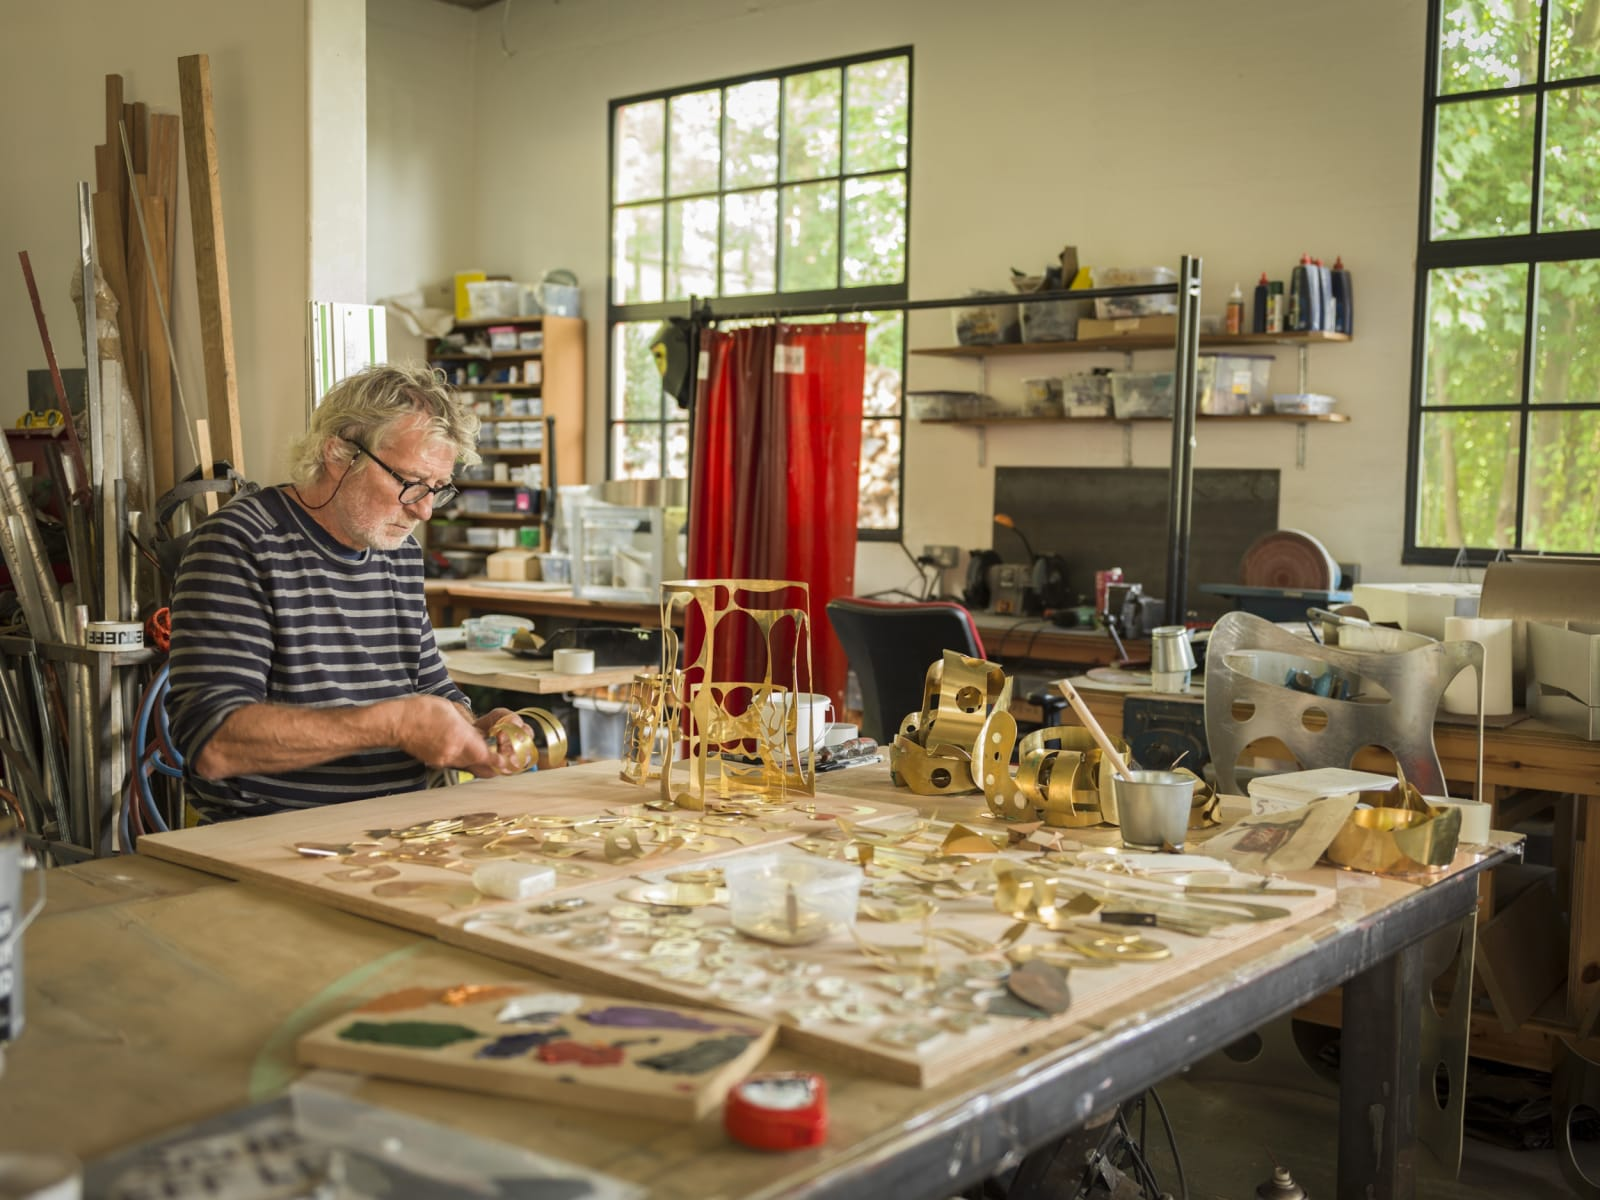 NEW film To celebrate his upcoming exhibition at Pangolin London - Jeff Lowe: In The Close Distance - the artist has commissioned a new film documenting his life making sculpture.